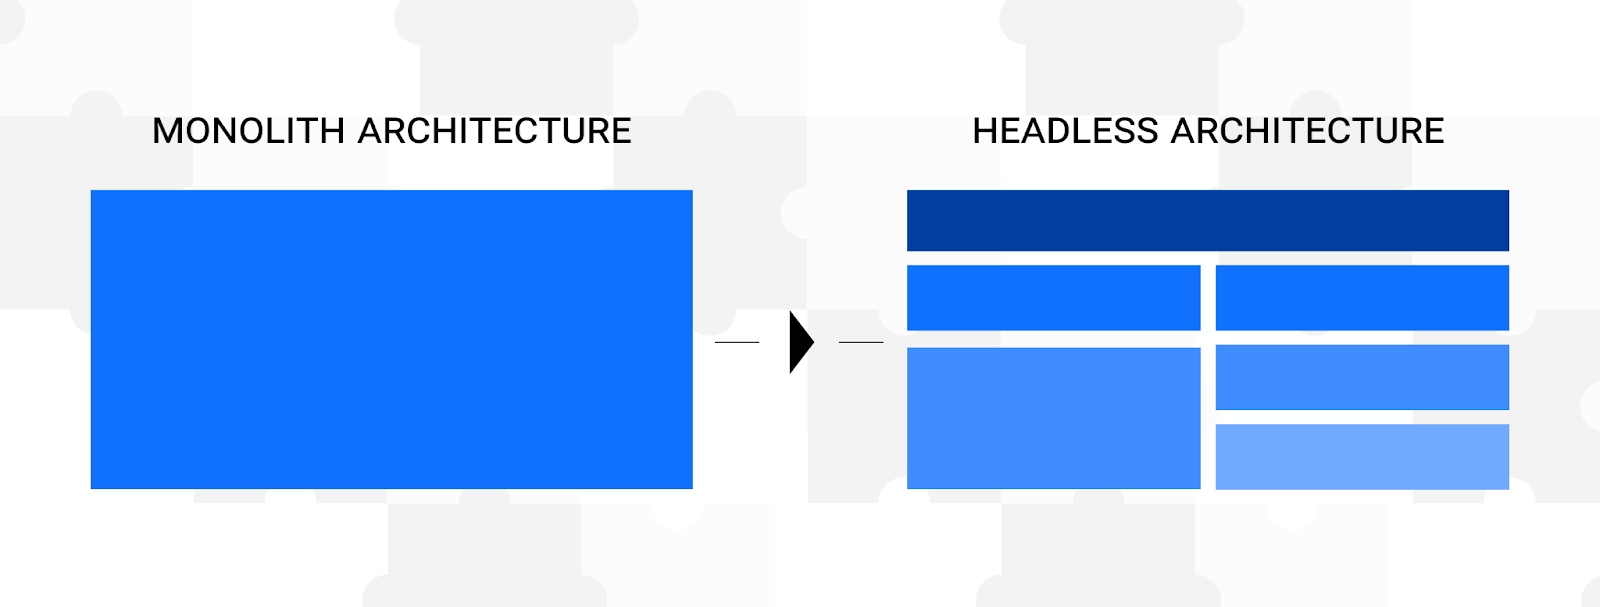 Monolith architecture as a one piece compared to headless architecture as many puzzles